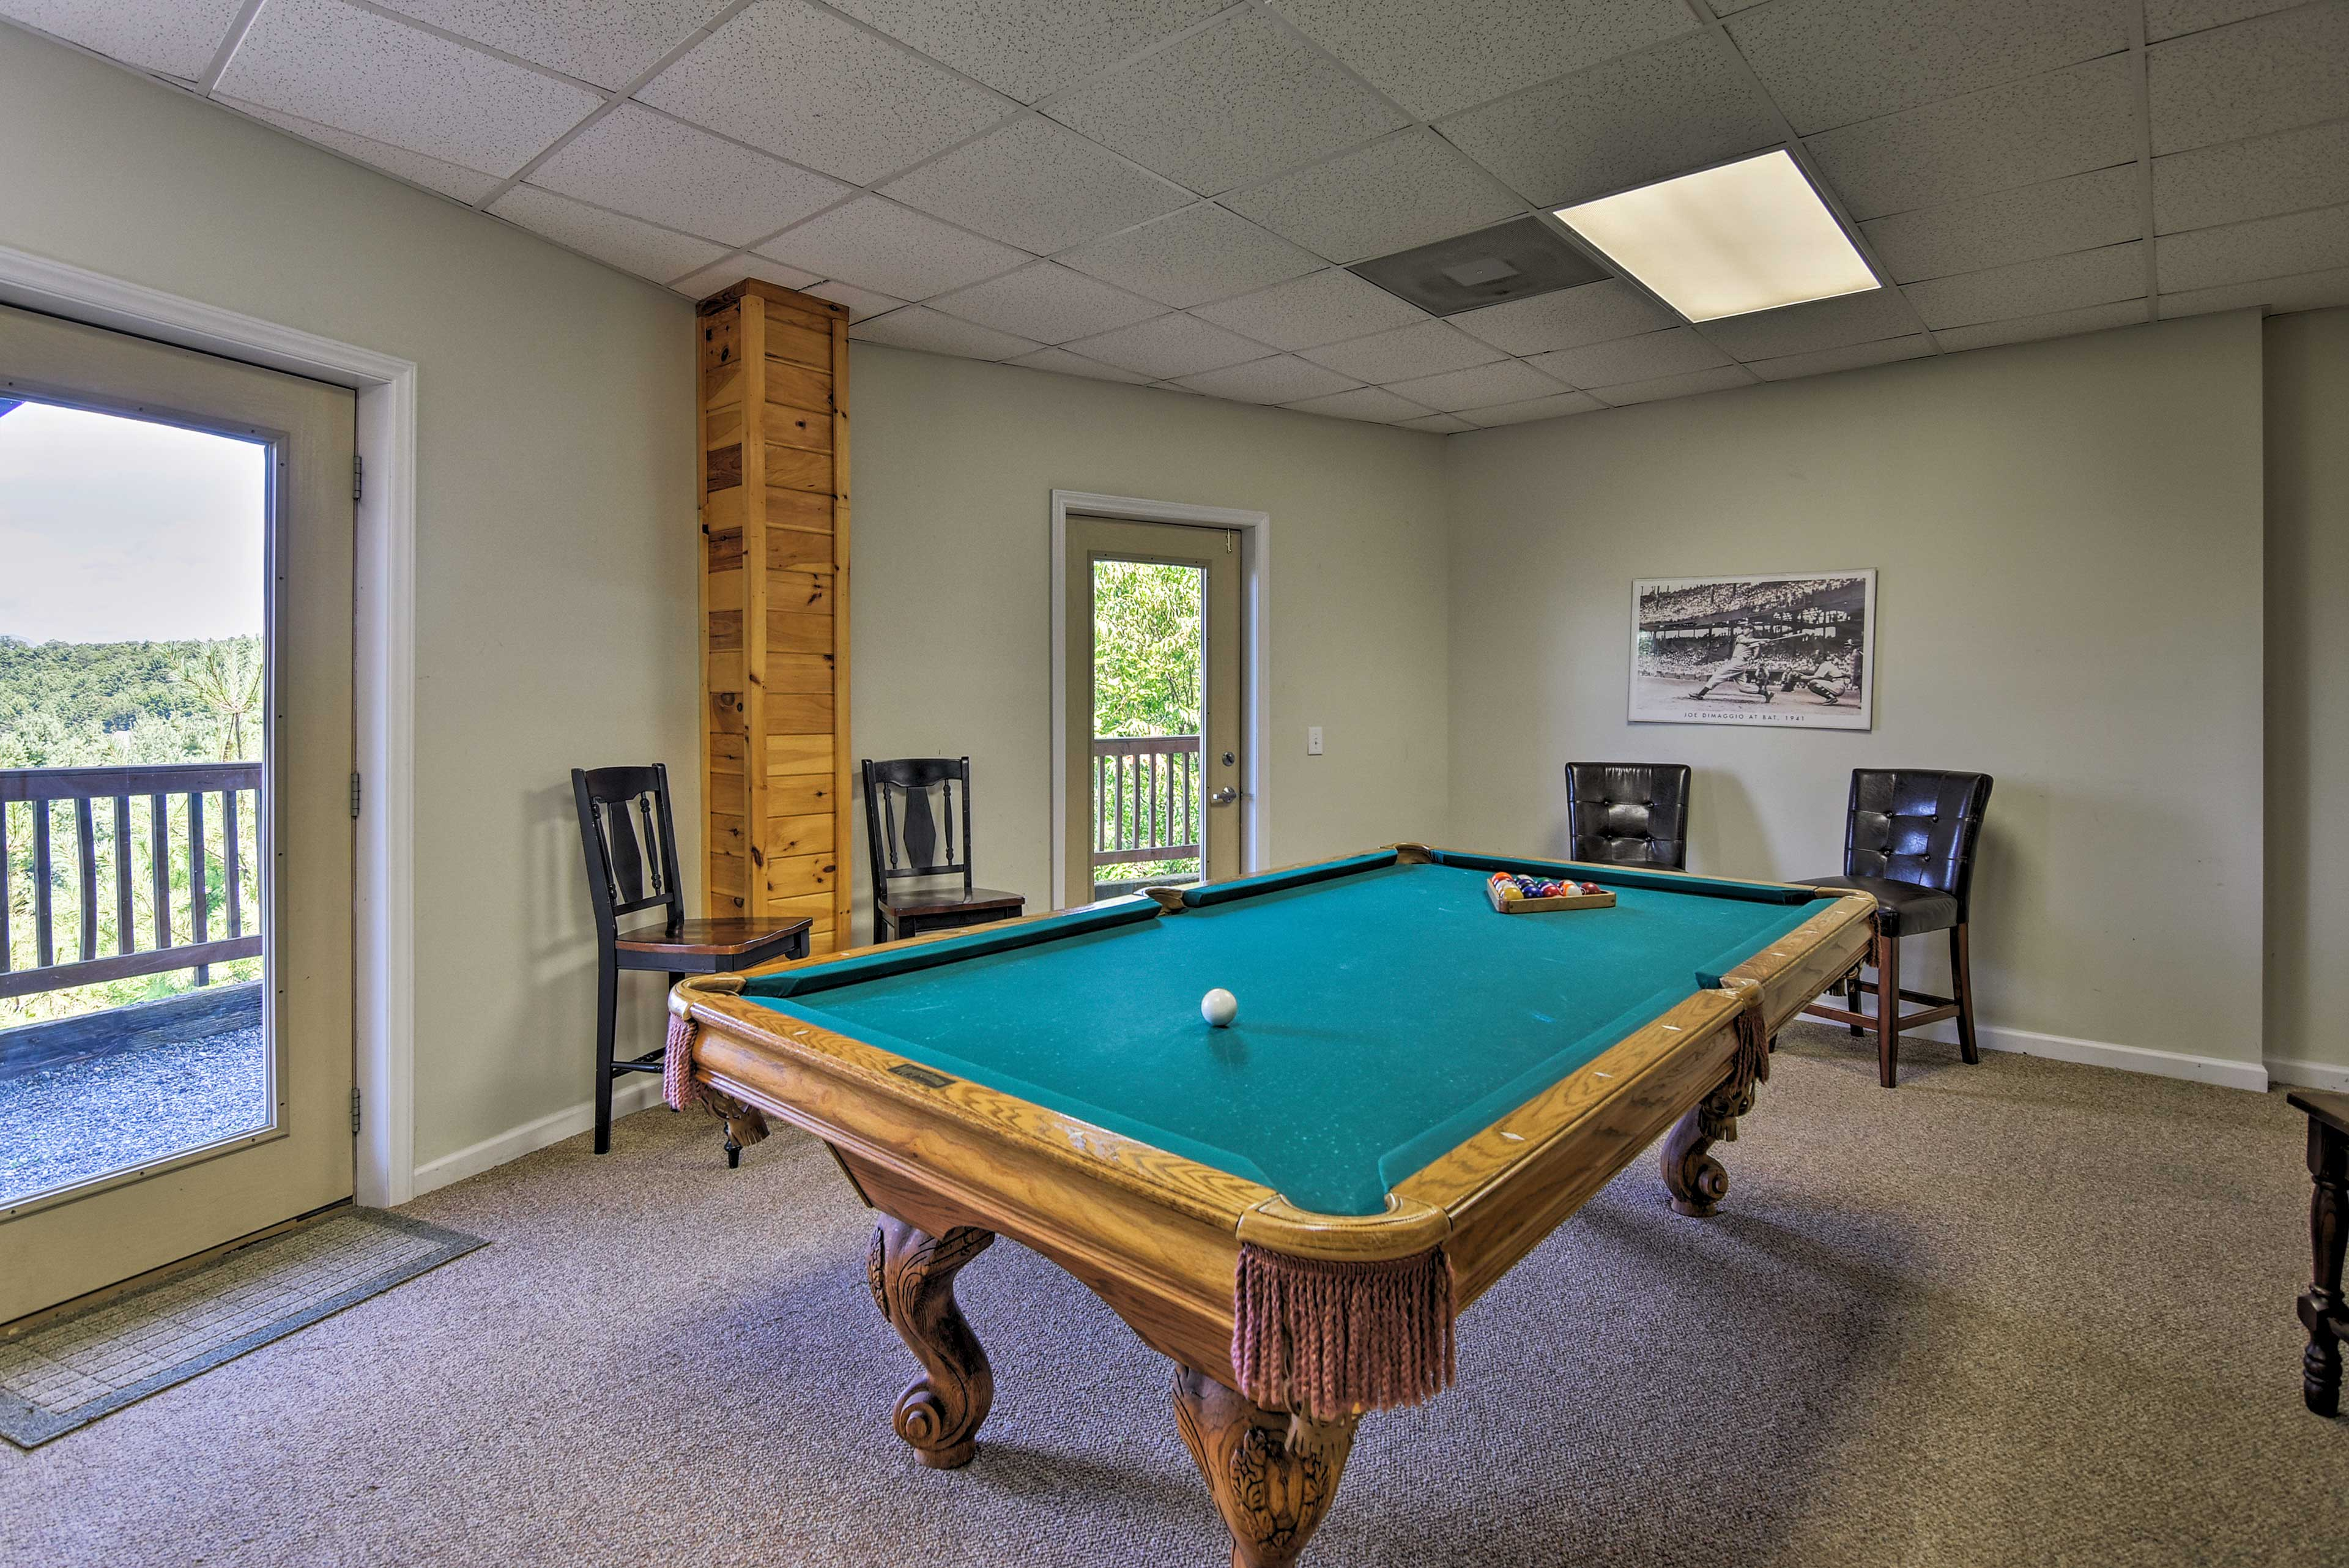 Shoot some pool while looking out at the picturesque views.